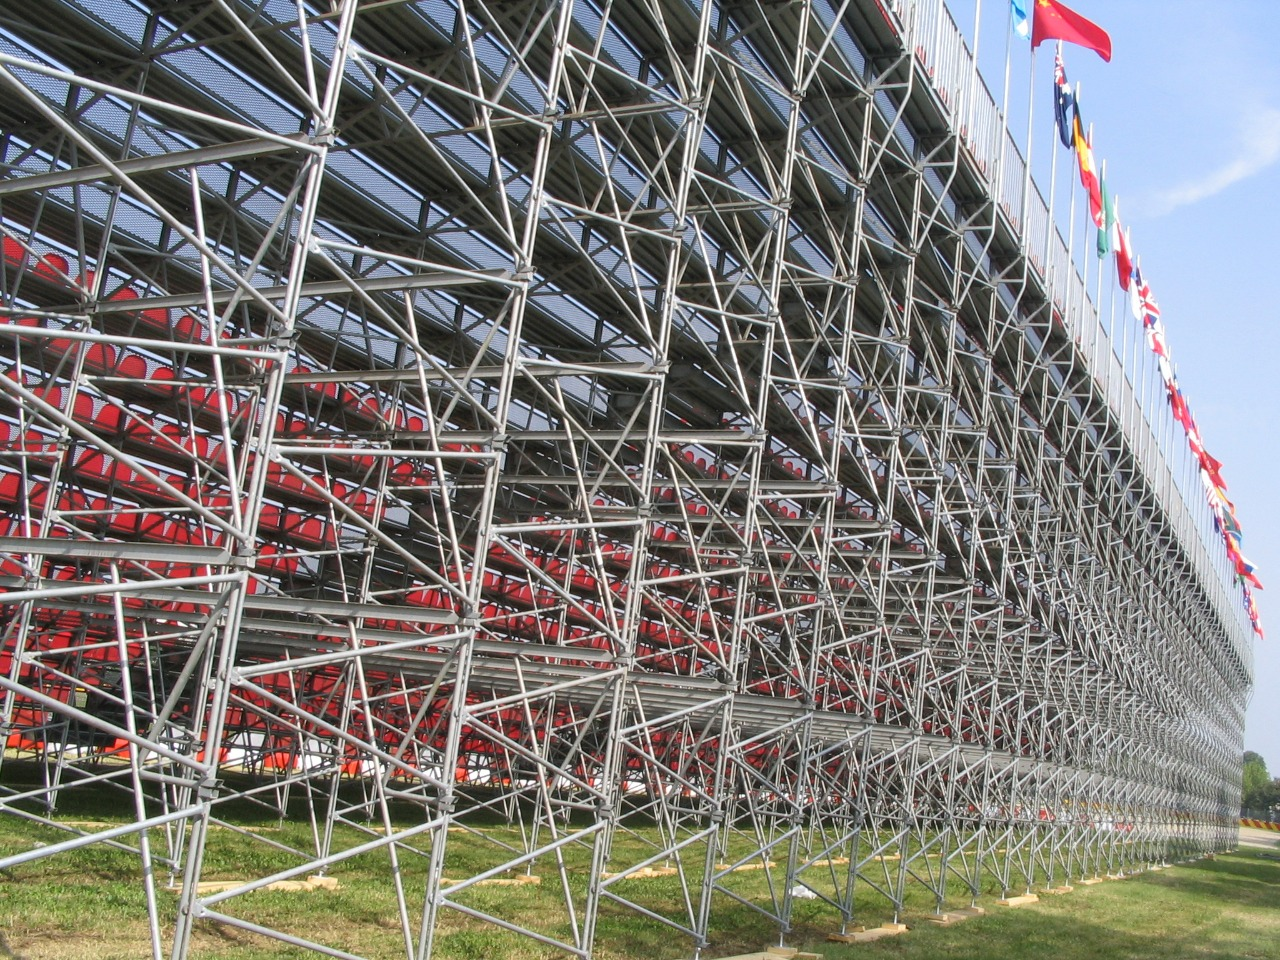 Gallery foto n.1 Prefabricated stand G2M21/0 - Ferrari racetrack